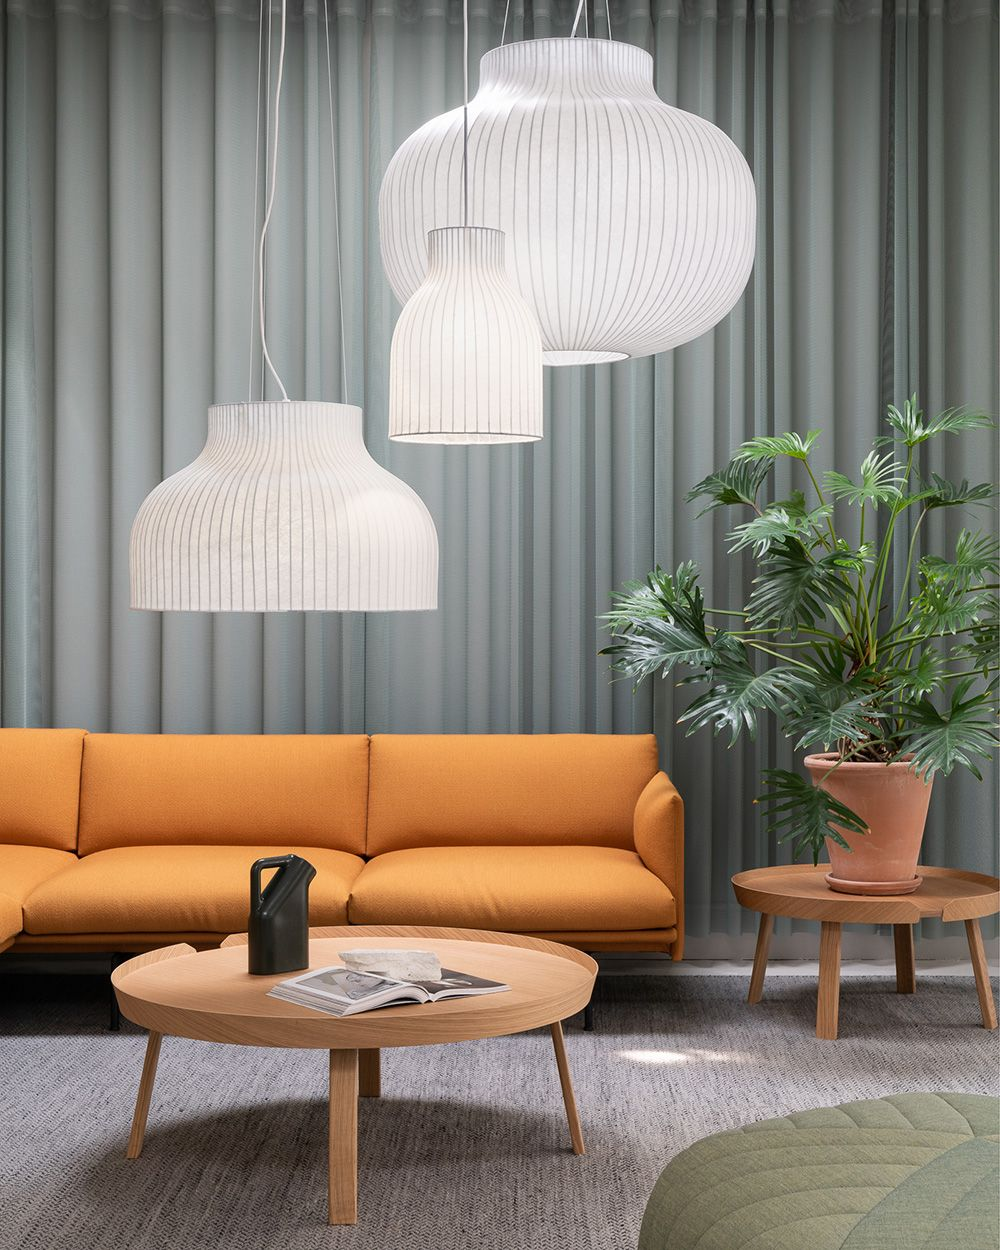 Minimal And Timeless Scandinavian Sofa Decor Inspiration From Muuto The Outline Series Adds New Perspectives To The Classic Scandinavian Design Sofas Ombygning